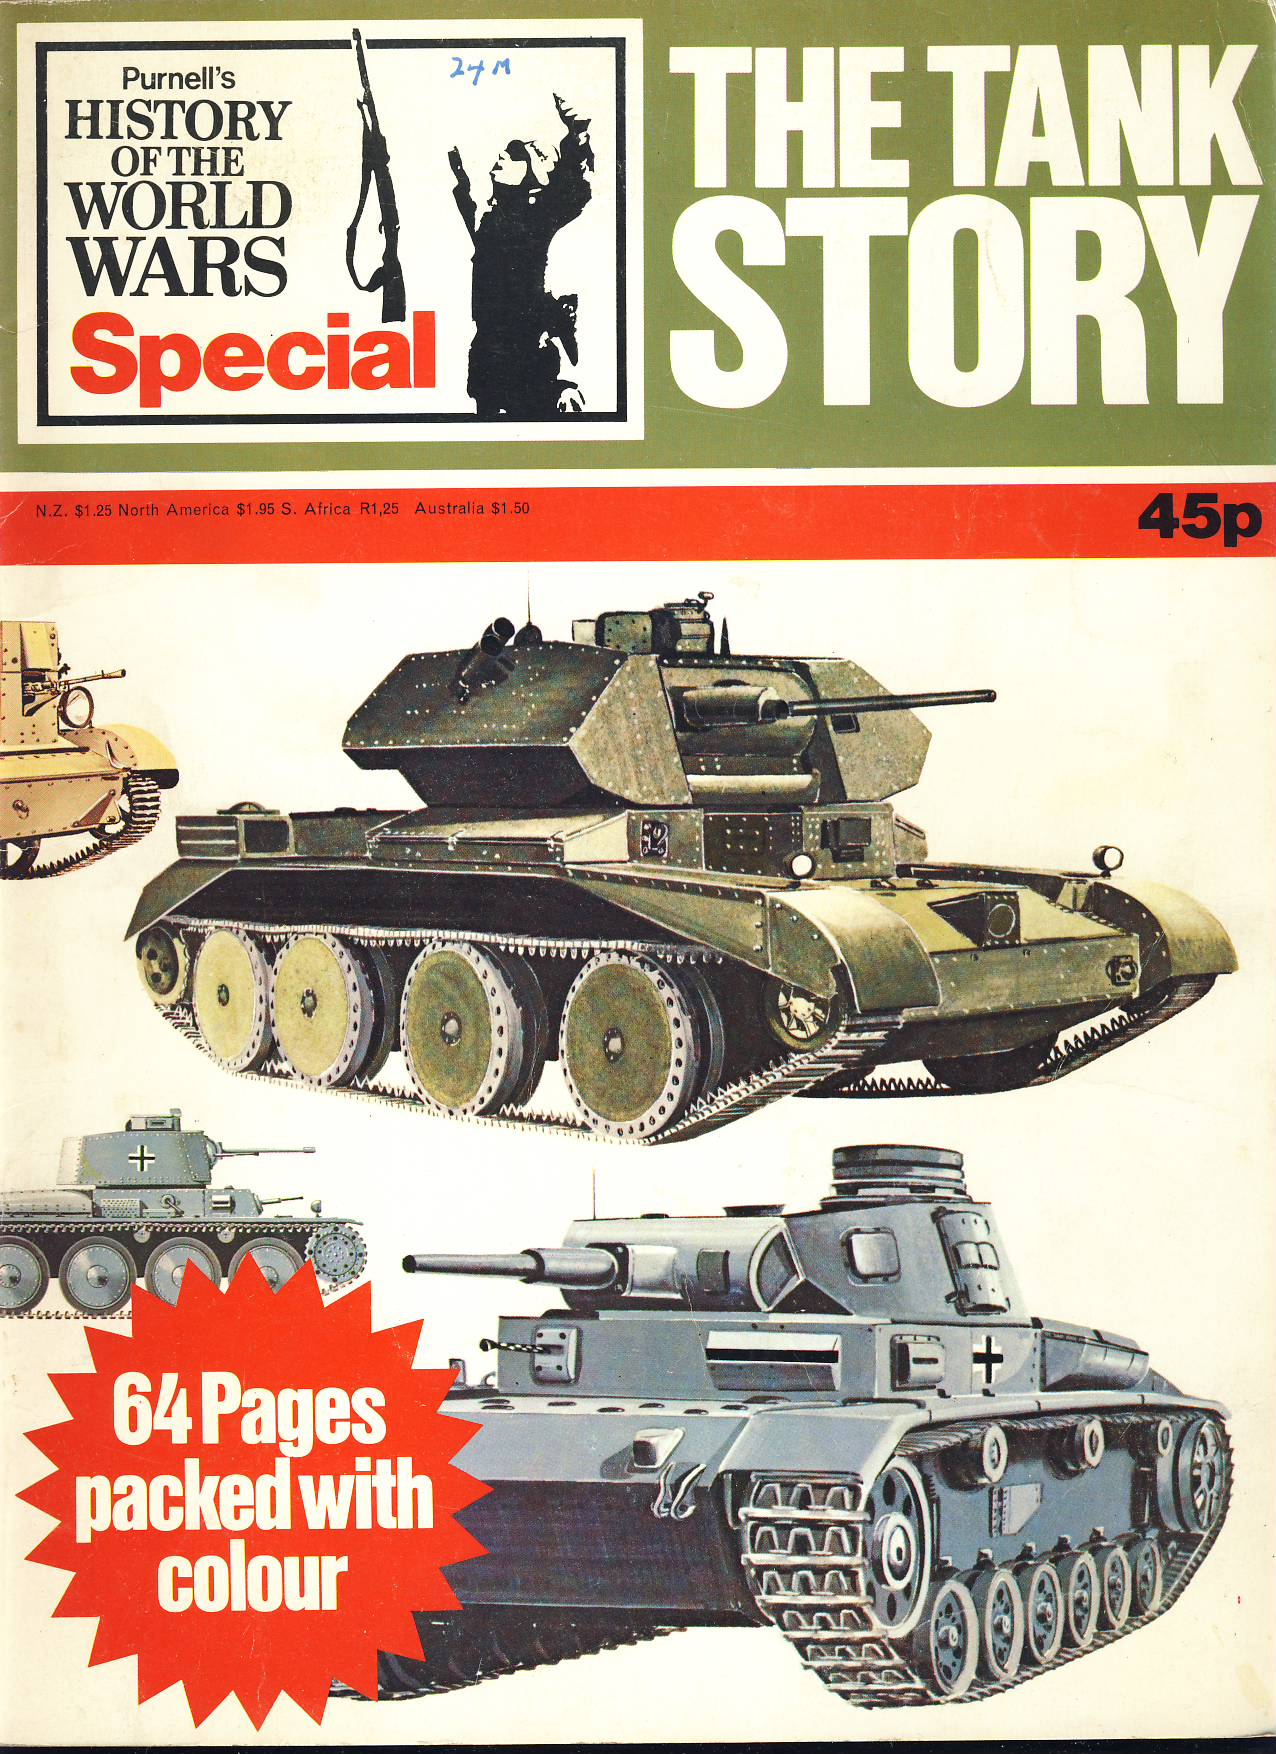 History of the World Wars Magazine SPECIAL The Tank Story 1972 A vintage Purnell's publication in very well read condition - 64 pages. Please see larger photo and full description for details.